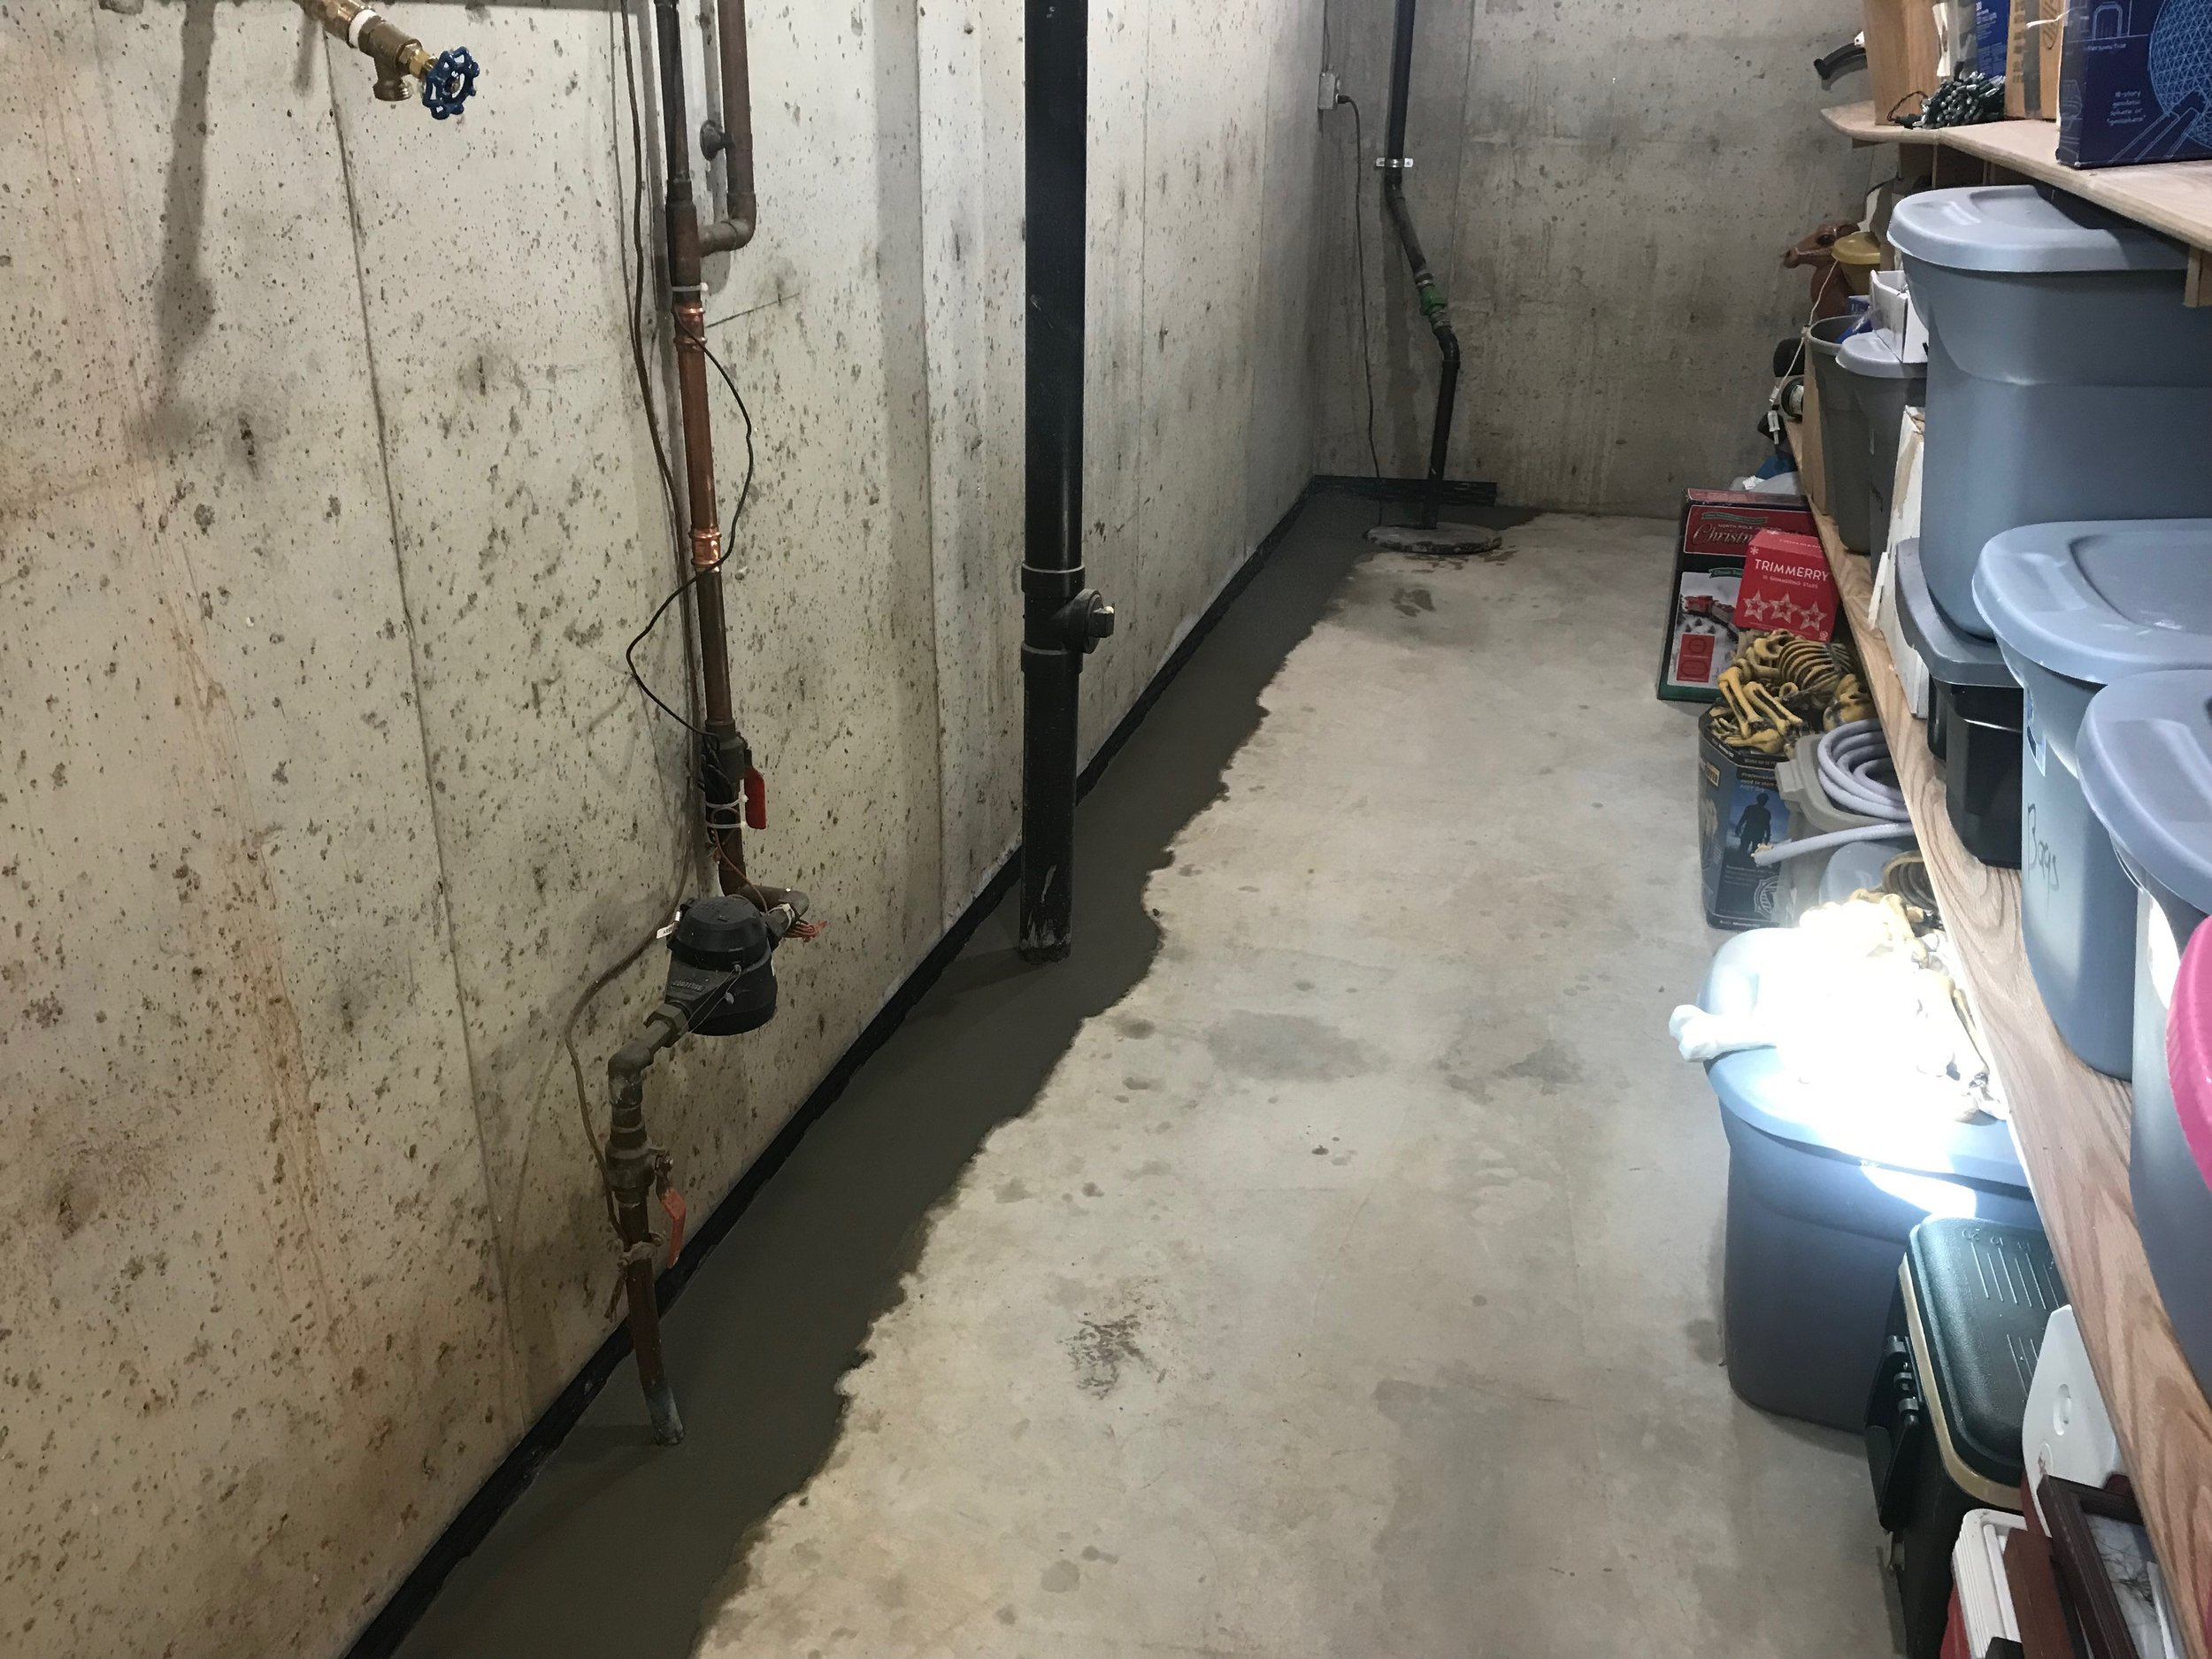 Basement RepairExperts in Basement Repair and Waterproofing